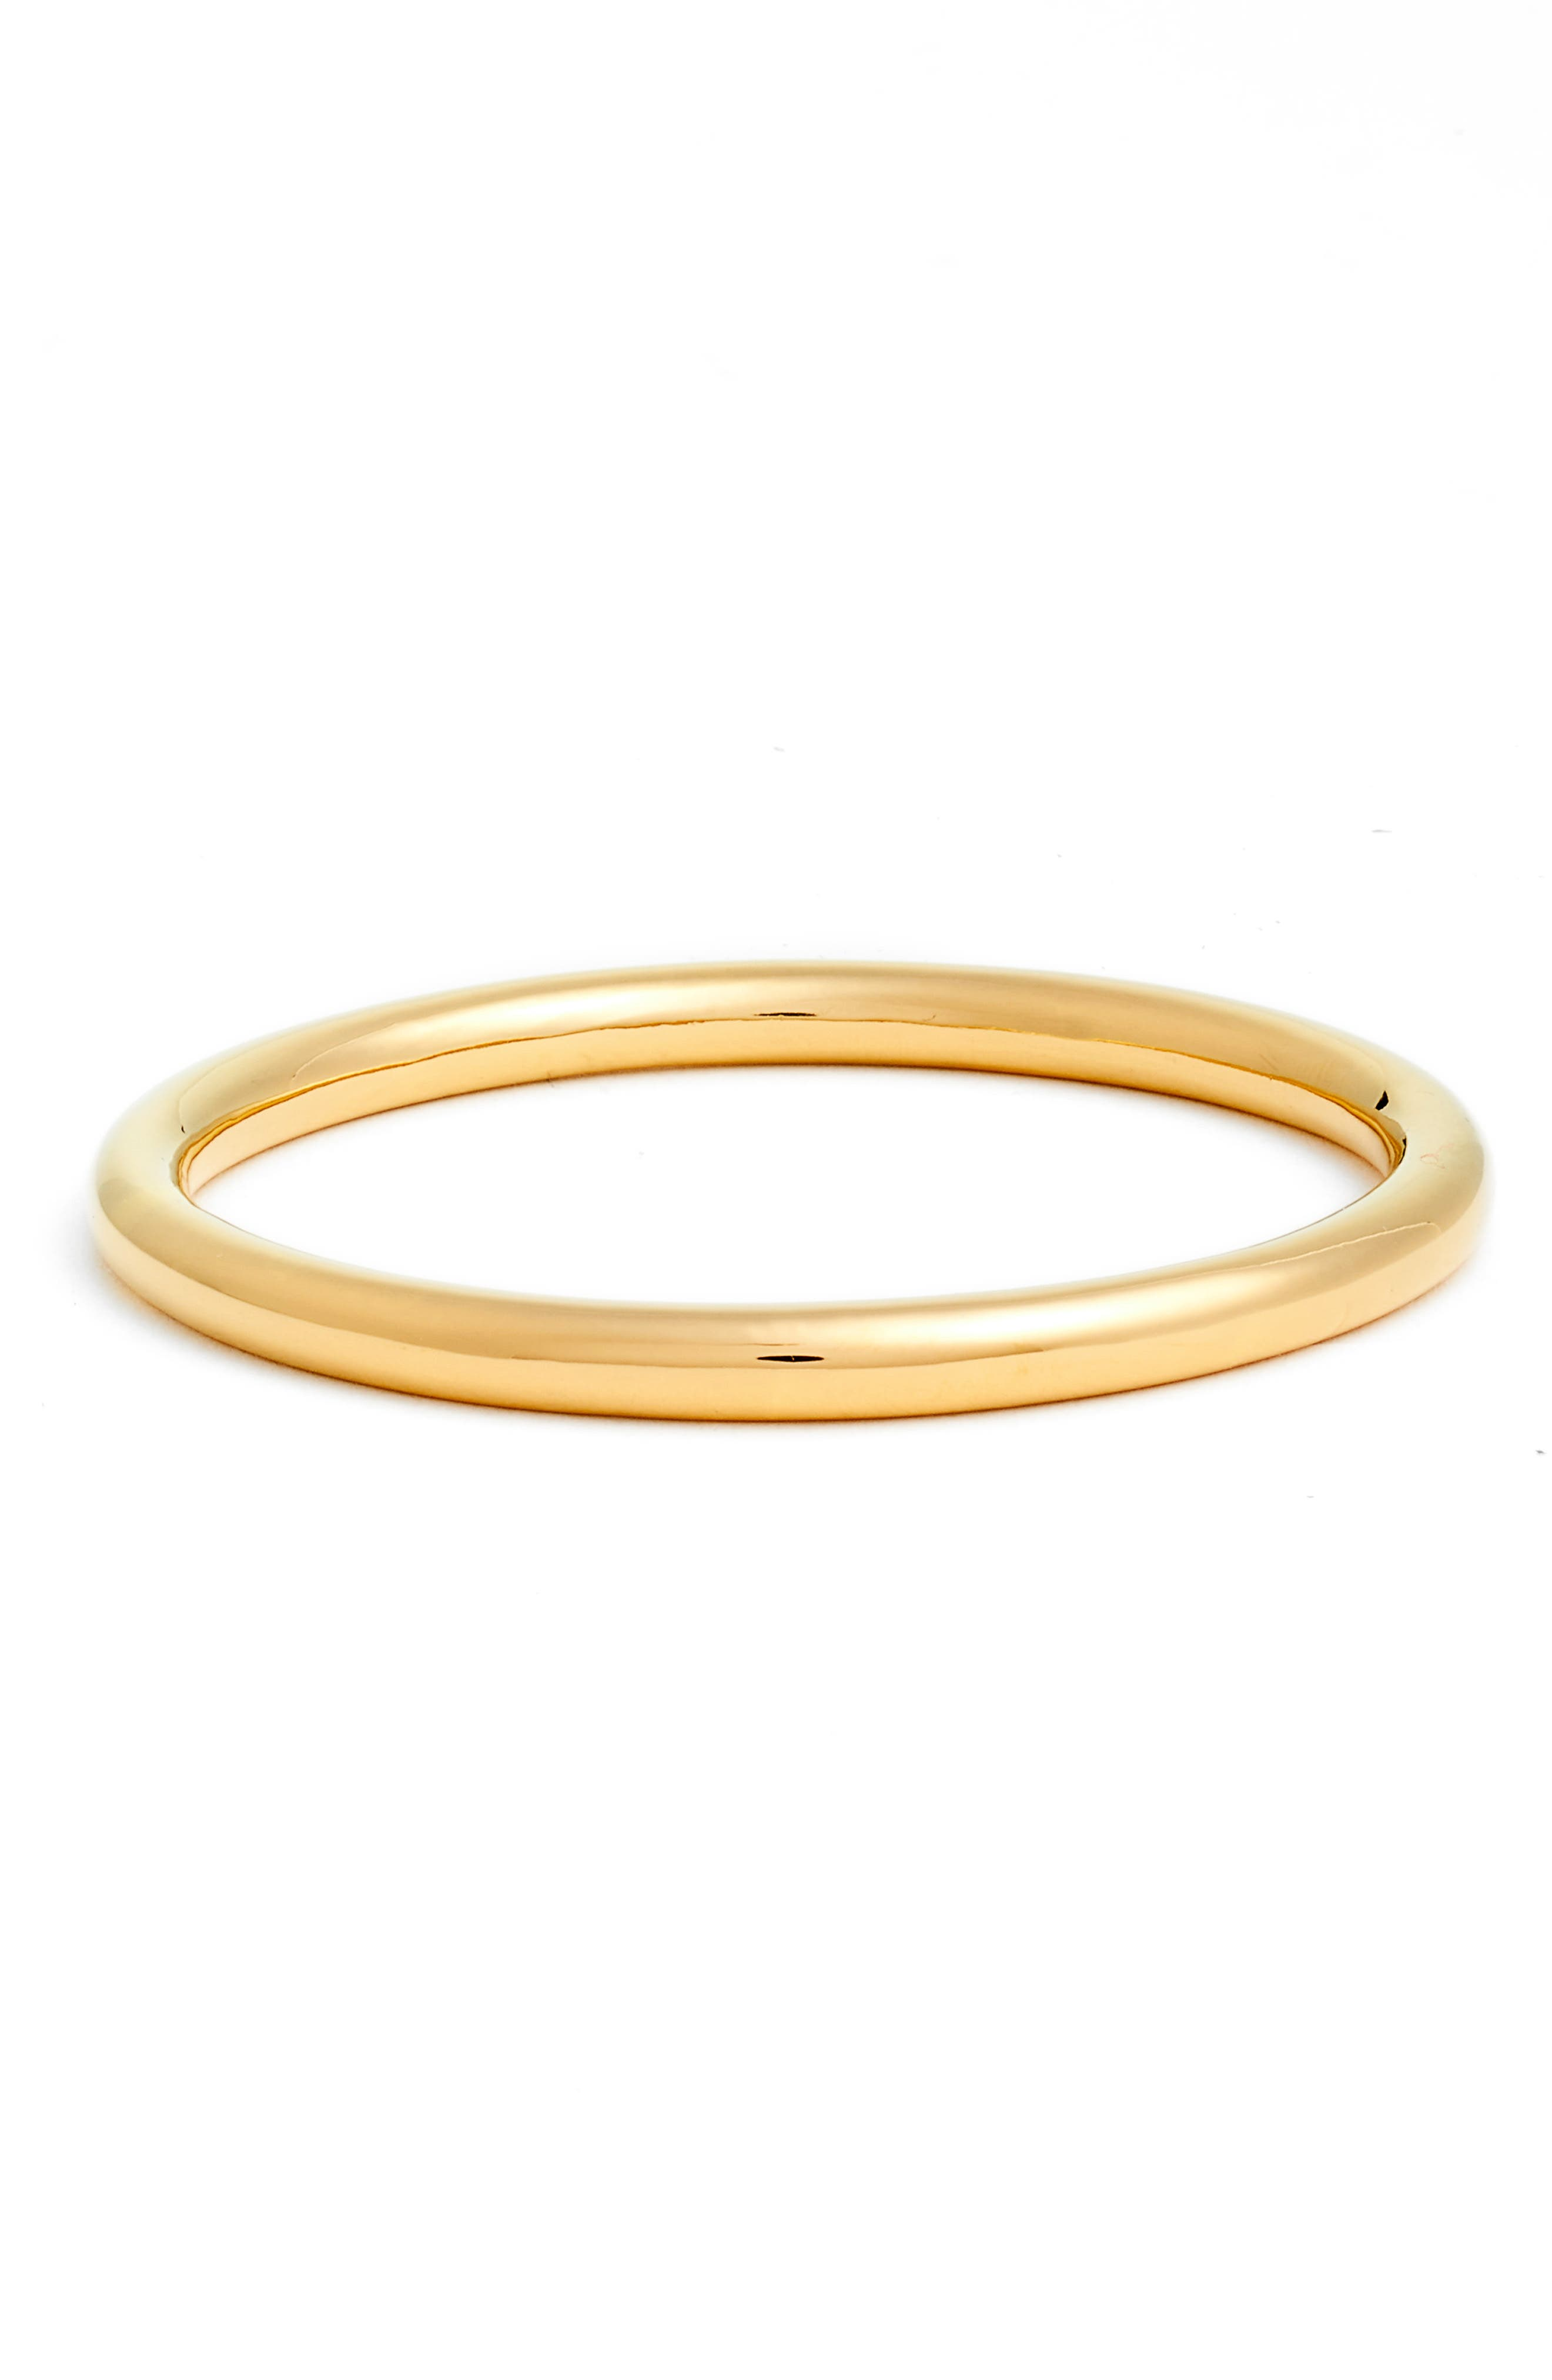 Simon Sebbag Smooth Vermeil Bangle